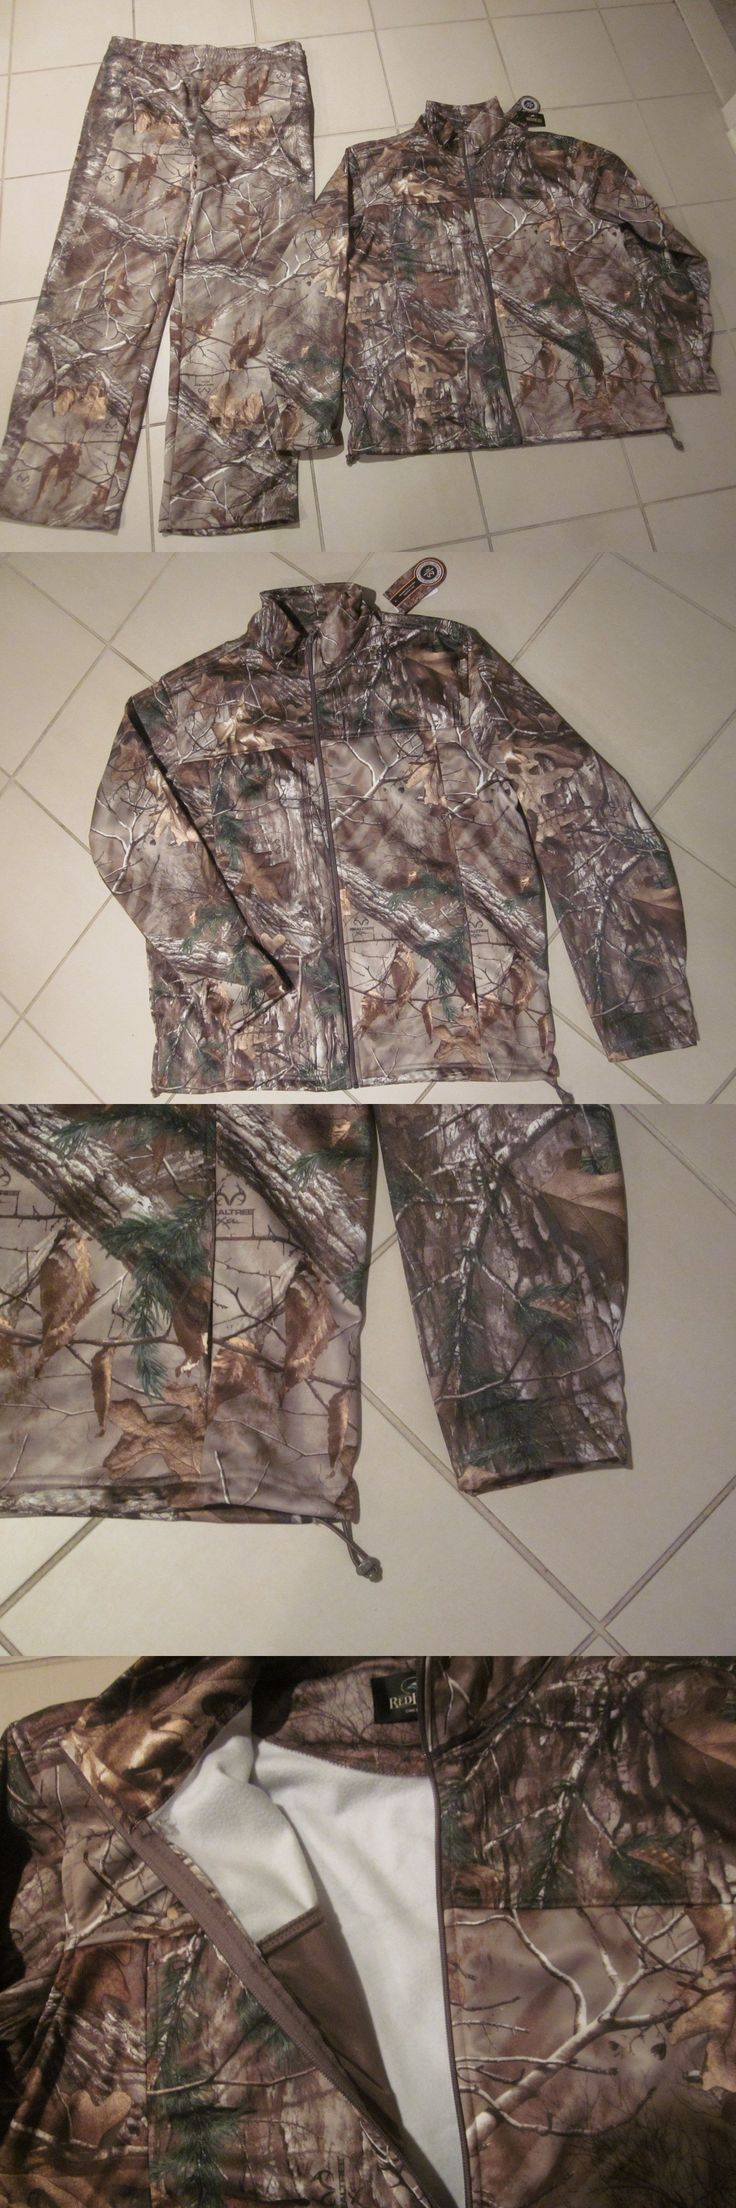 Jacket and Pant Sets 177872: Redhead Fleece Camouflage Realtree *Jacket And Pant* 2 Piece Outfit Nwt Xxl 2Xl -> BUY IT NOW ONLY: $70.99 on eBay!